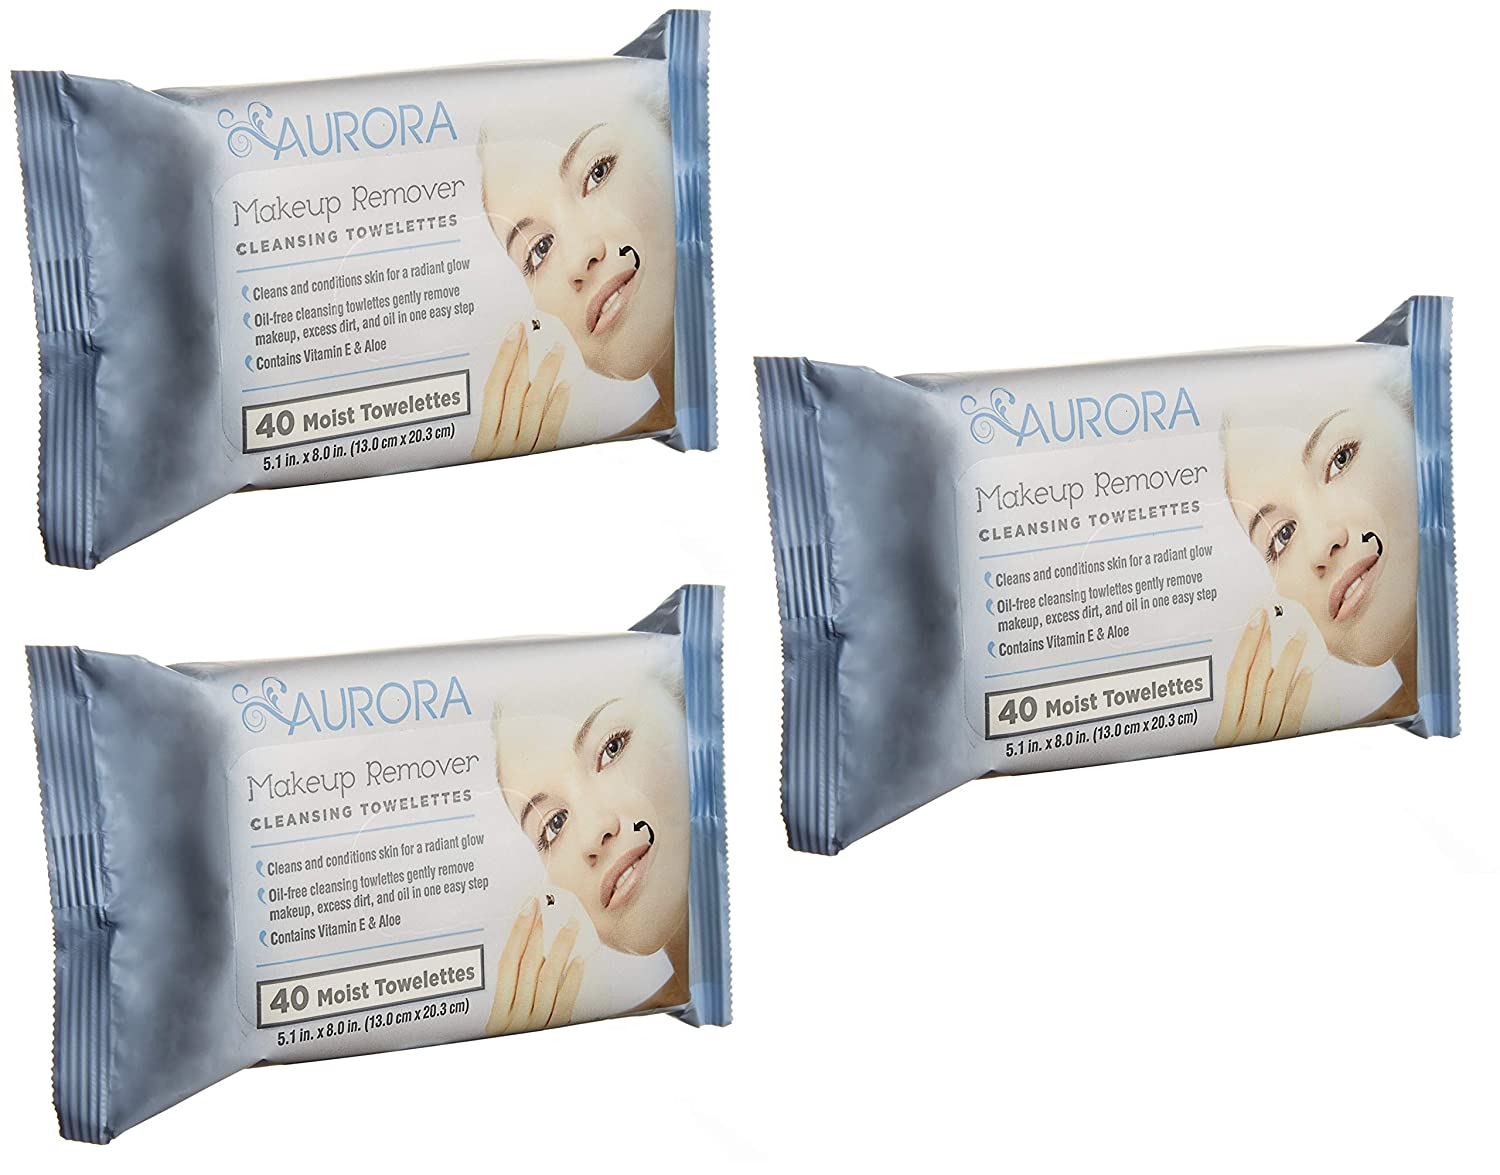 """120 Aurora Makeup Remover Cleansing Towelettes 5.1"""" x 8"""". Hypoallergenic Wipes to remove Dirt, Oil, Makeup, Waterproof Mascara. Paraben-free, Alcohol-free Refreshing wipes. 3 pack of 40 each."""